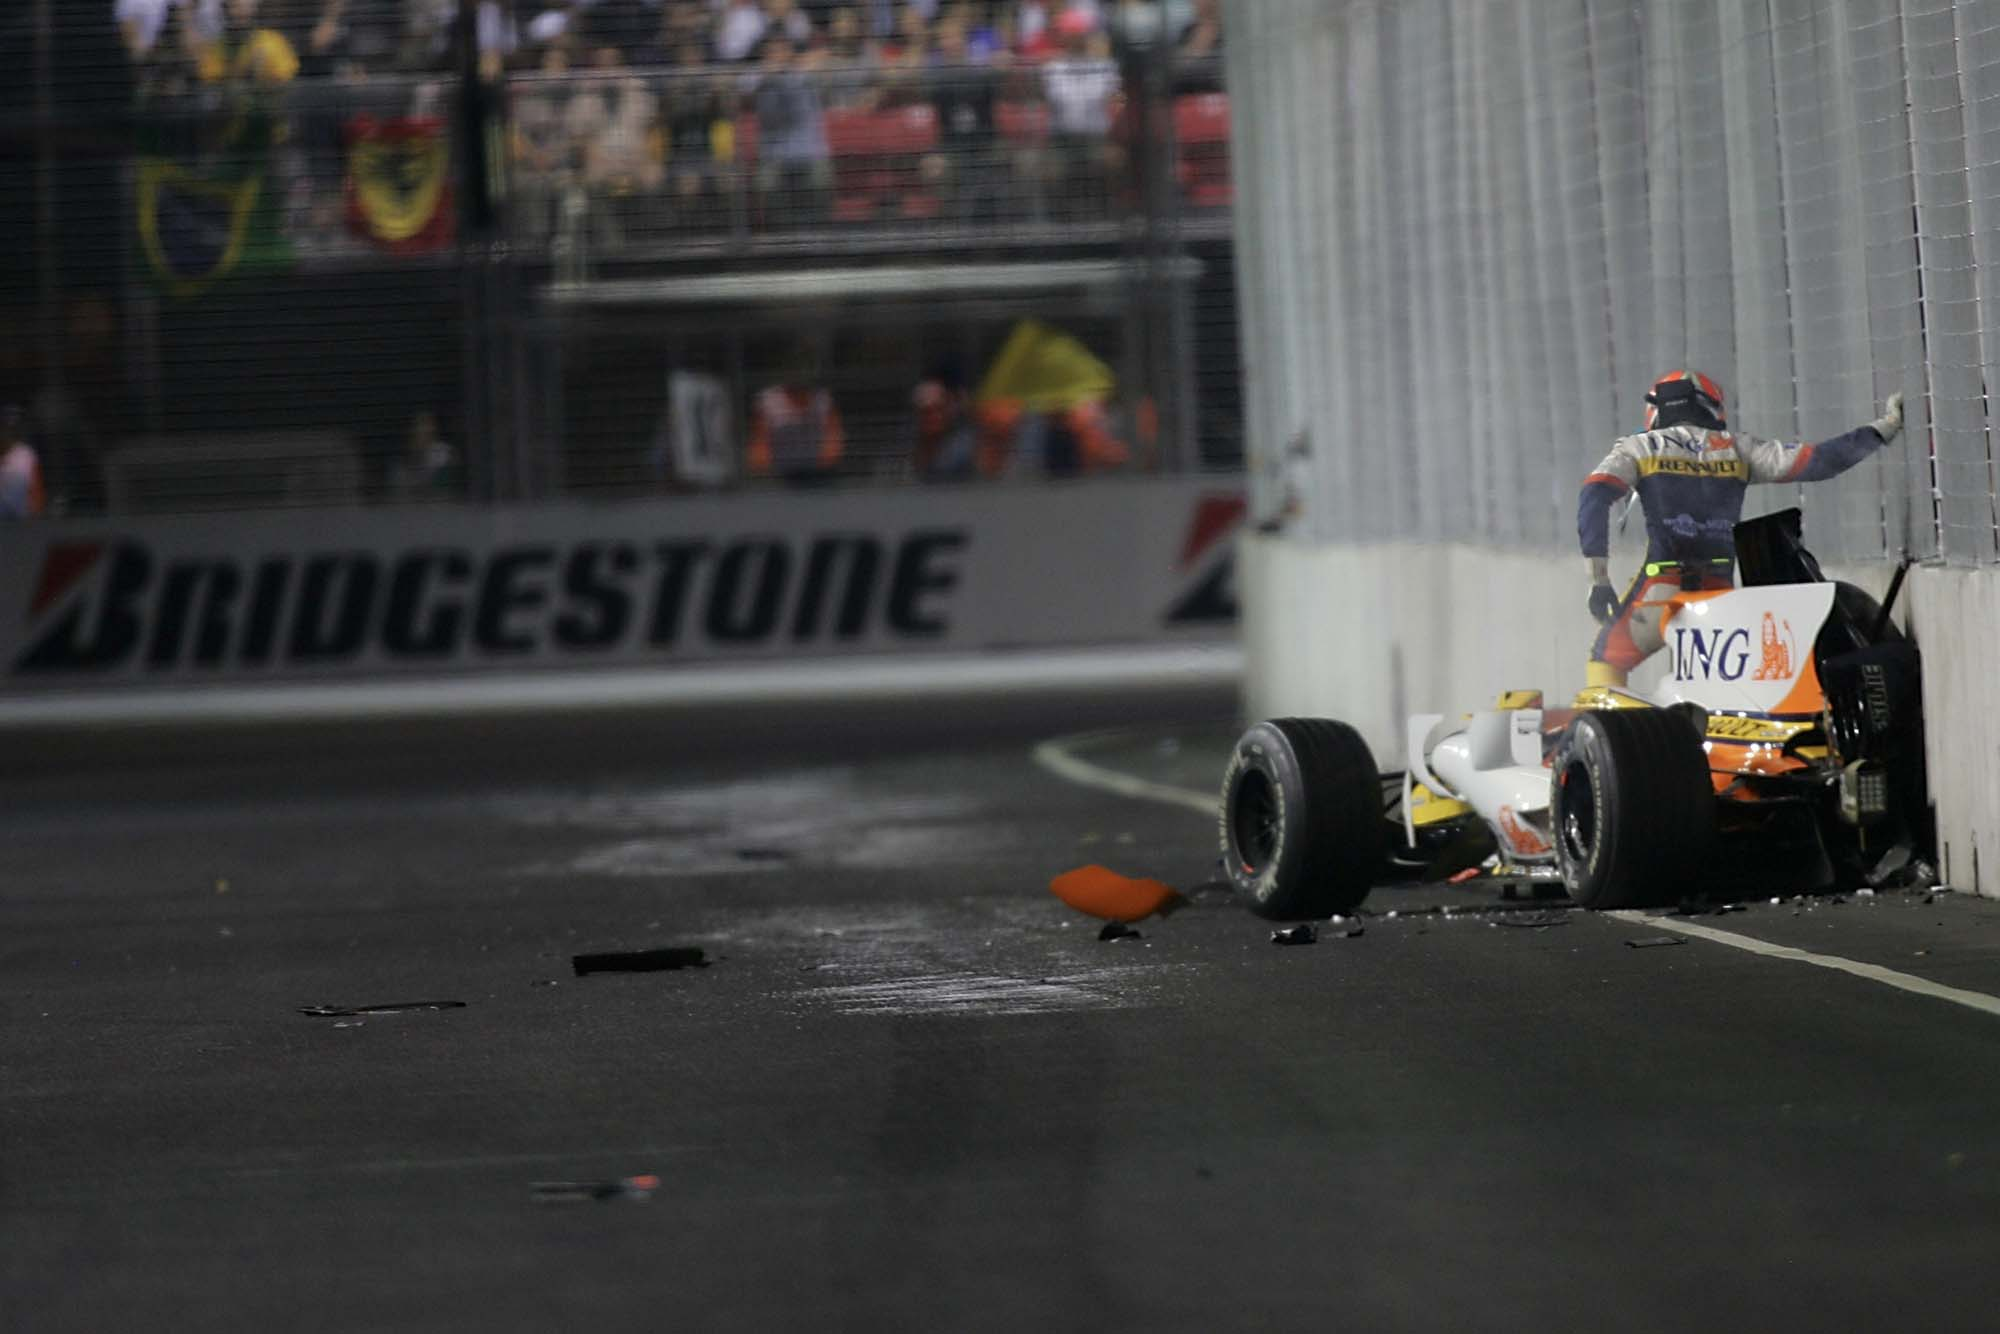 Nelson Piquet crashes his Renault at 2008 Singapore Grand Prix